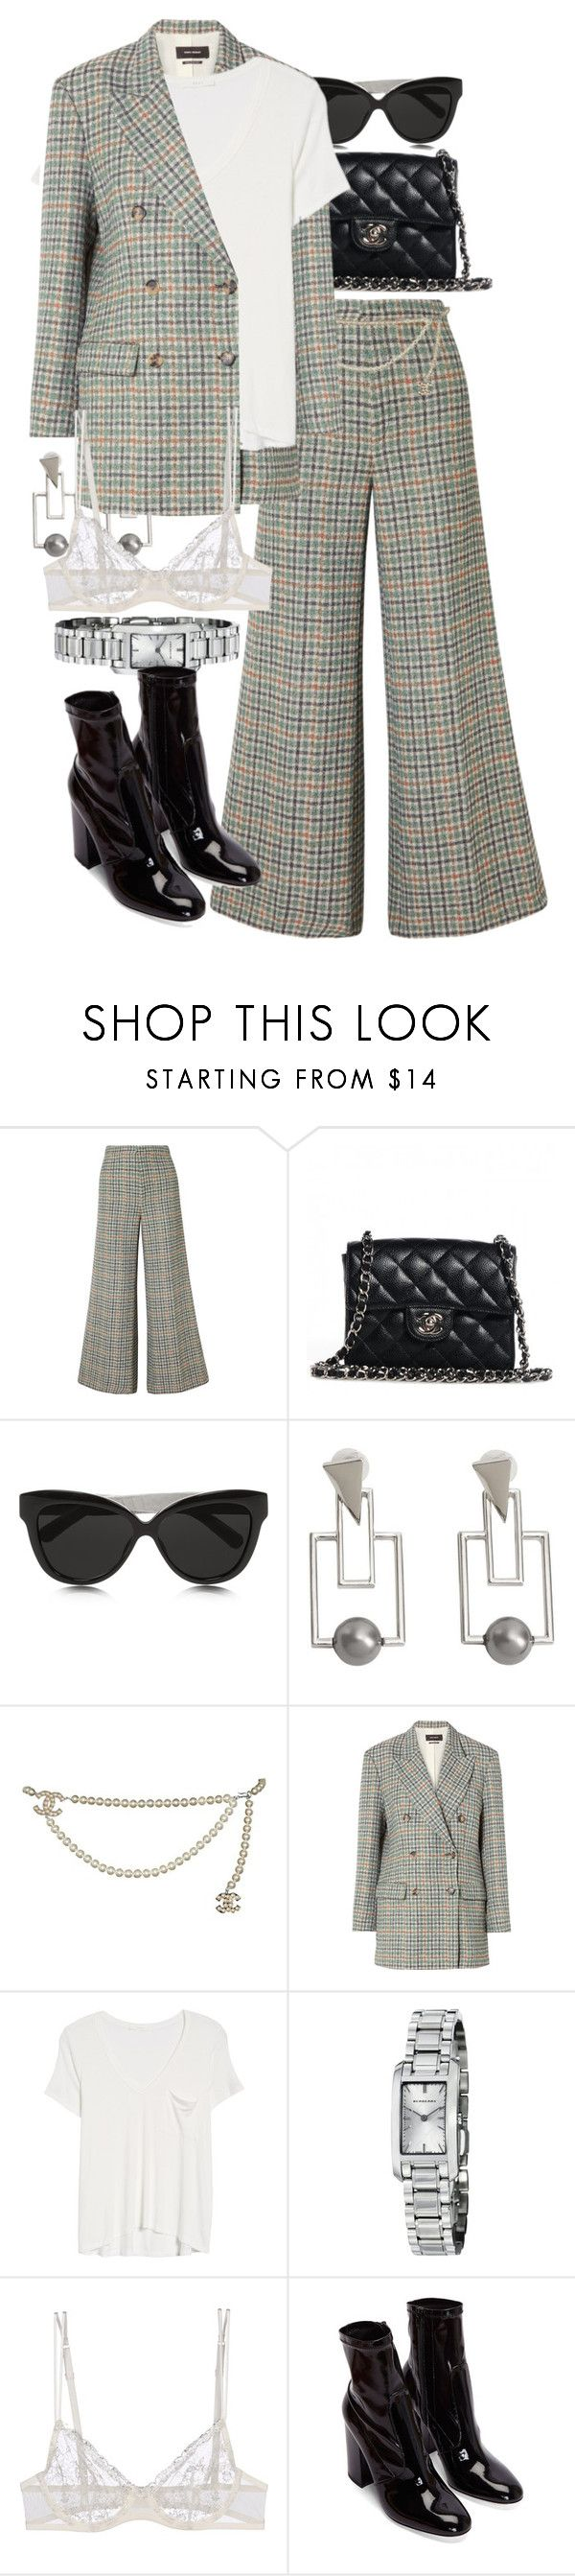 """""""Untitled #11477"""" by nikka-phillips ❤ liked on Polyvore featuring Isabel Marant, Chanel, Linda Farrow, MANGO, Lush, Burberry and La Perla"""